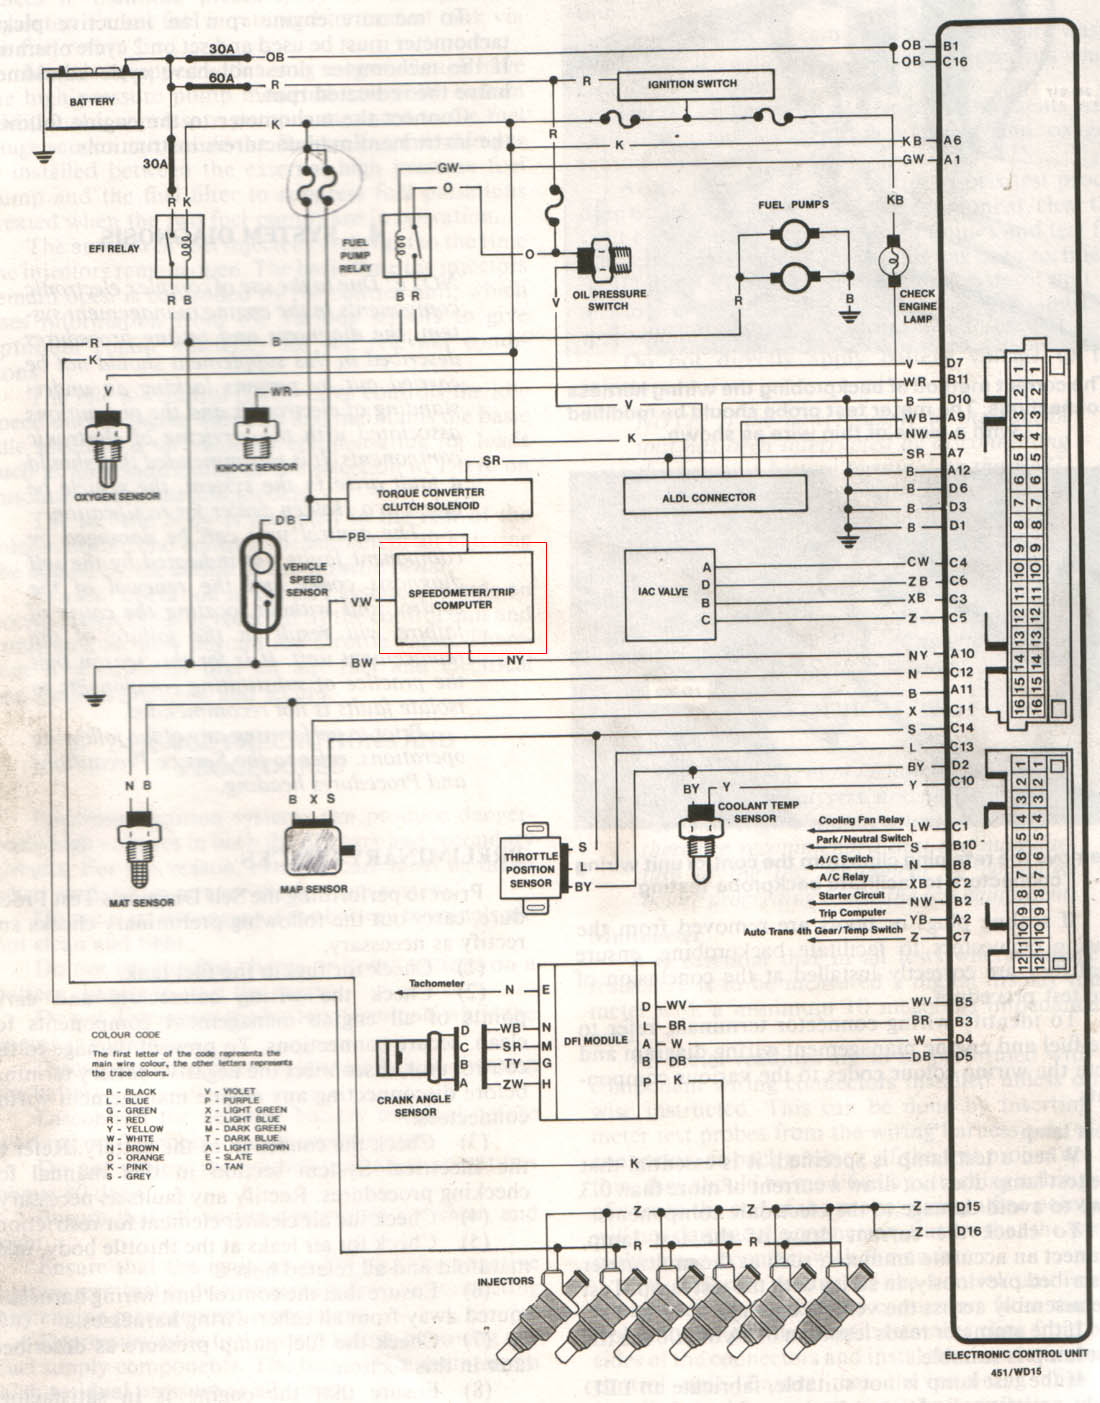 vn computer but not in car just commodores rh forums justcommodores com au Kohler Wiring Diagram Manual 1967 Chevelle Wiper Motor Wiring Diagram